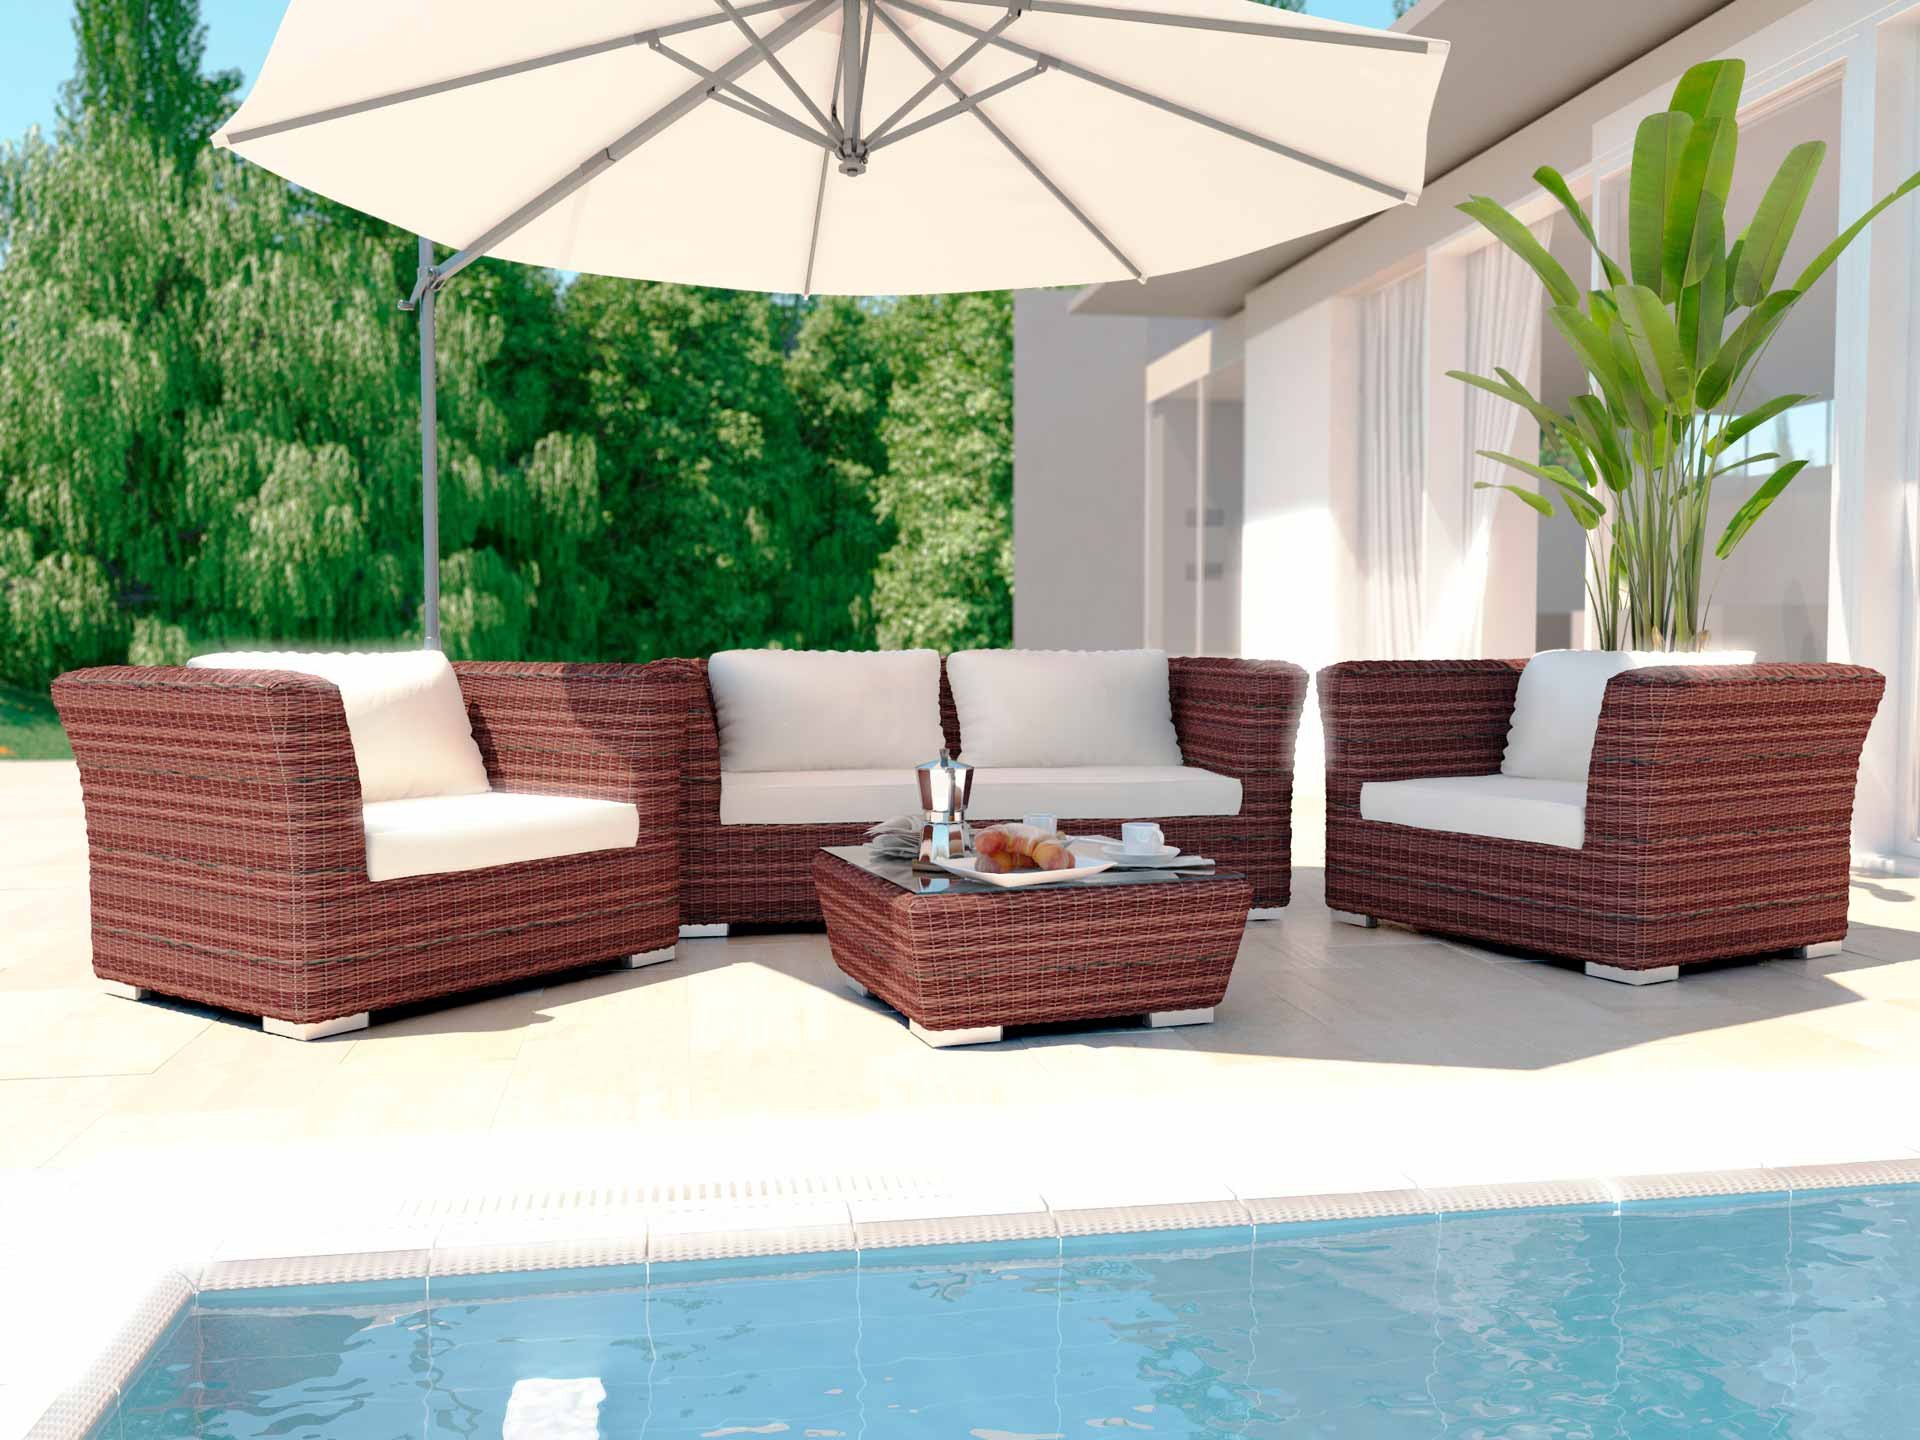 artelia terrassenm bel sitzgruppe rigantona m aus polyrattan. Black Bedroom Furniture Sets. Home Design Ideas